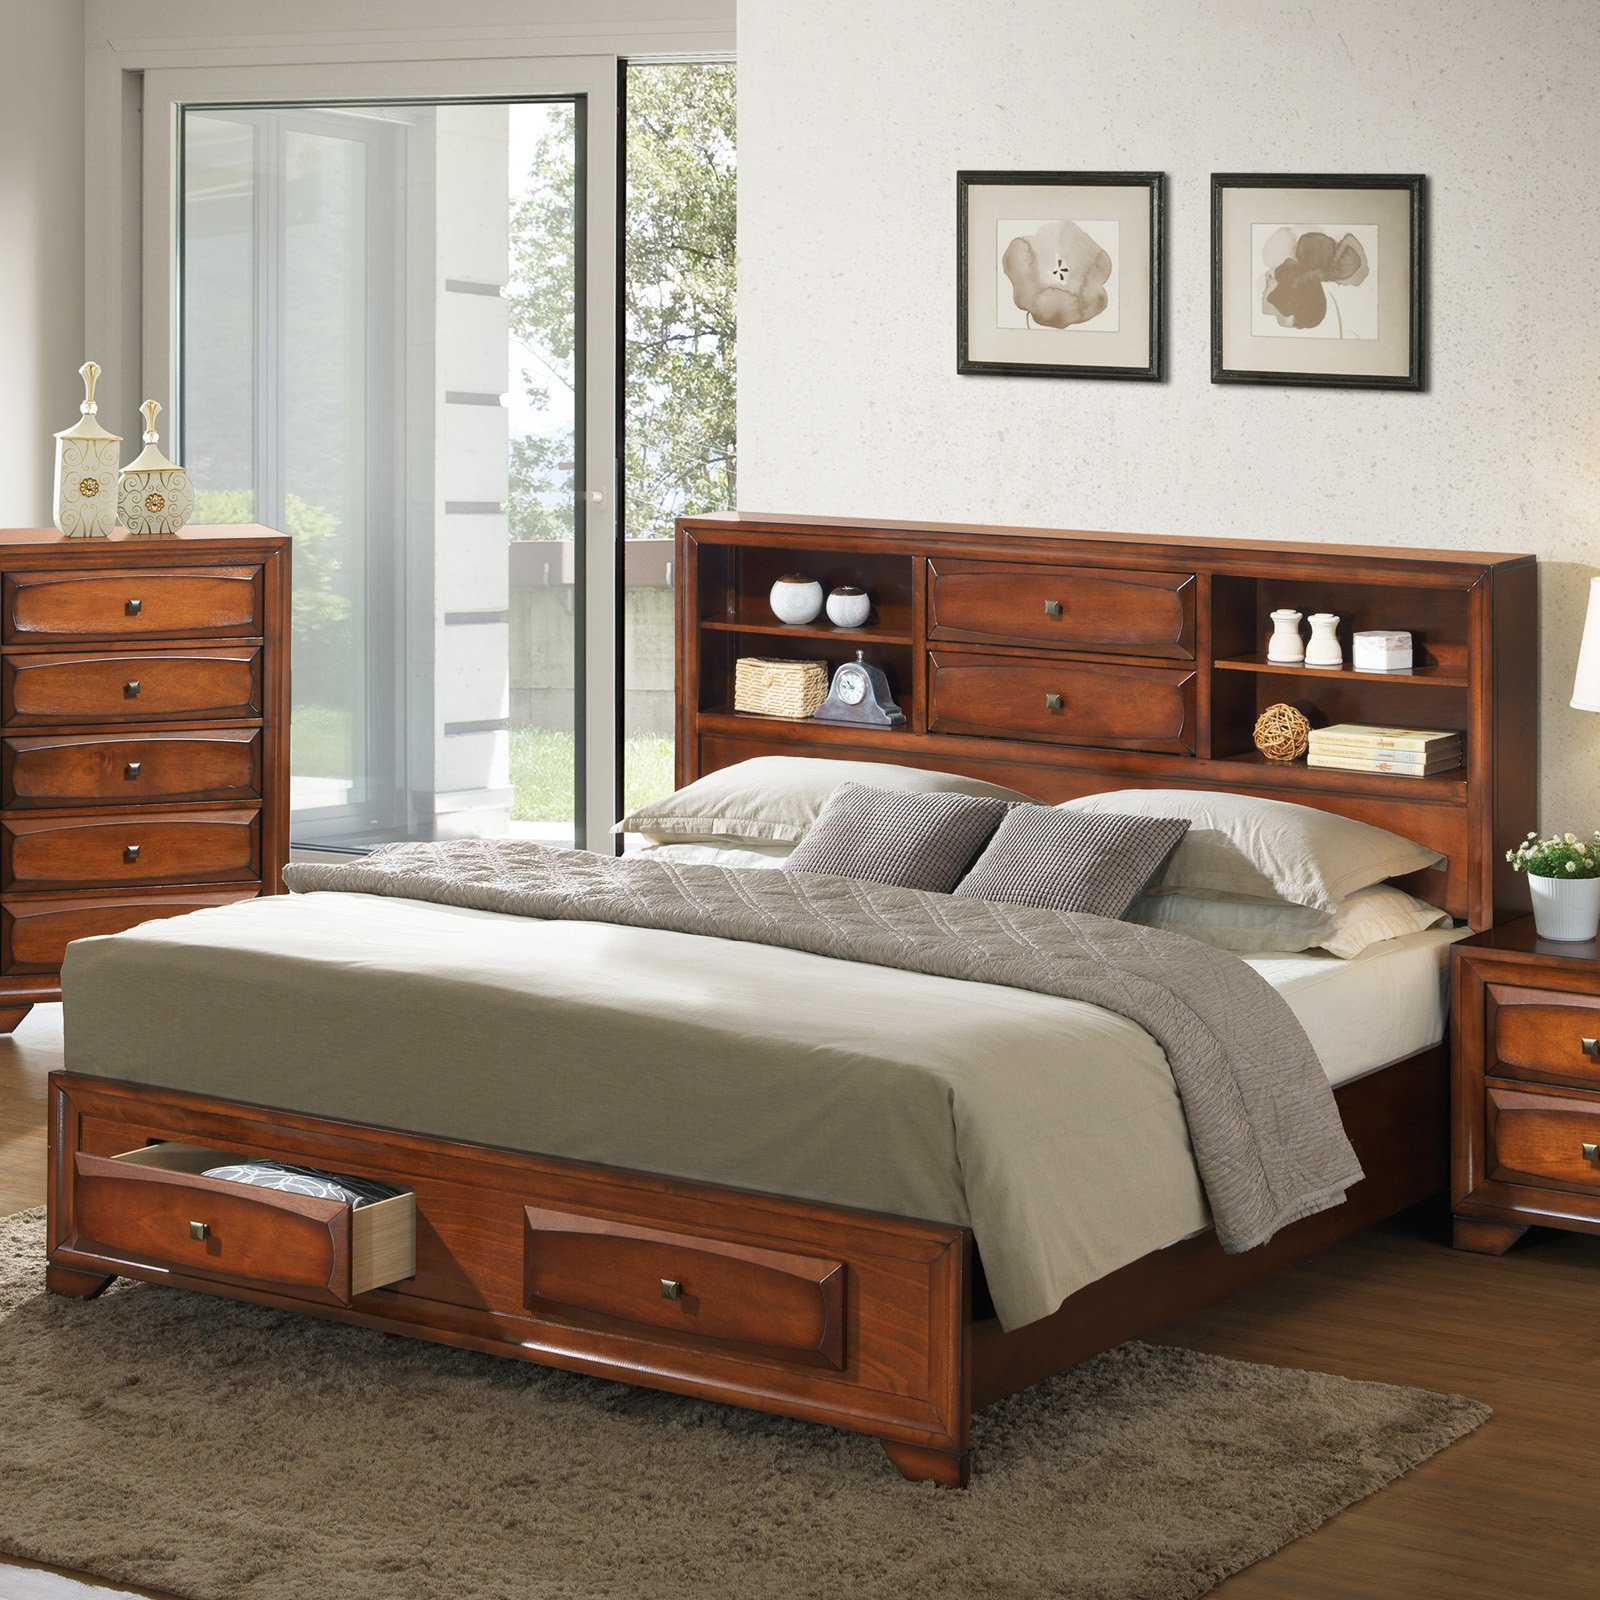 Roundhill Furniture Oakland Asger Storage Platform Bed